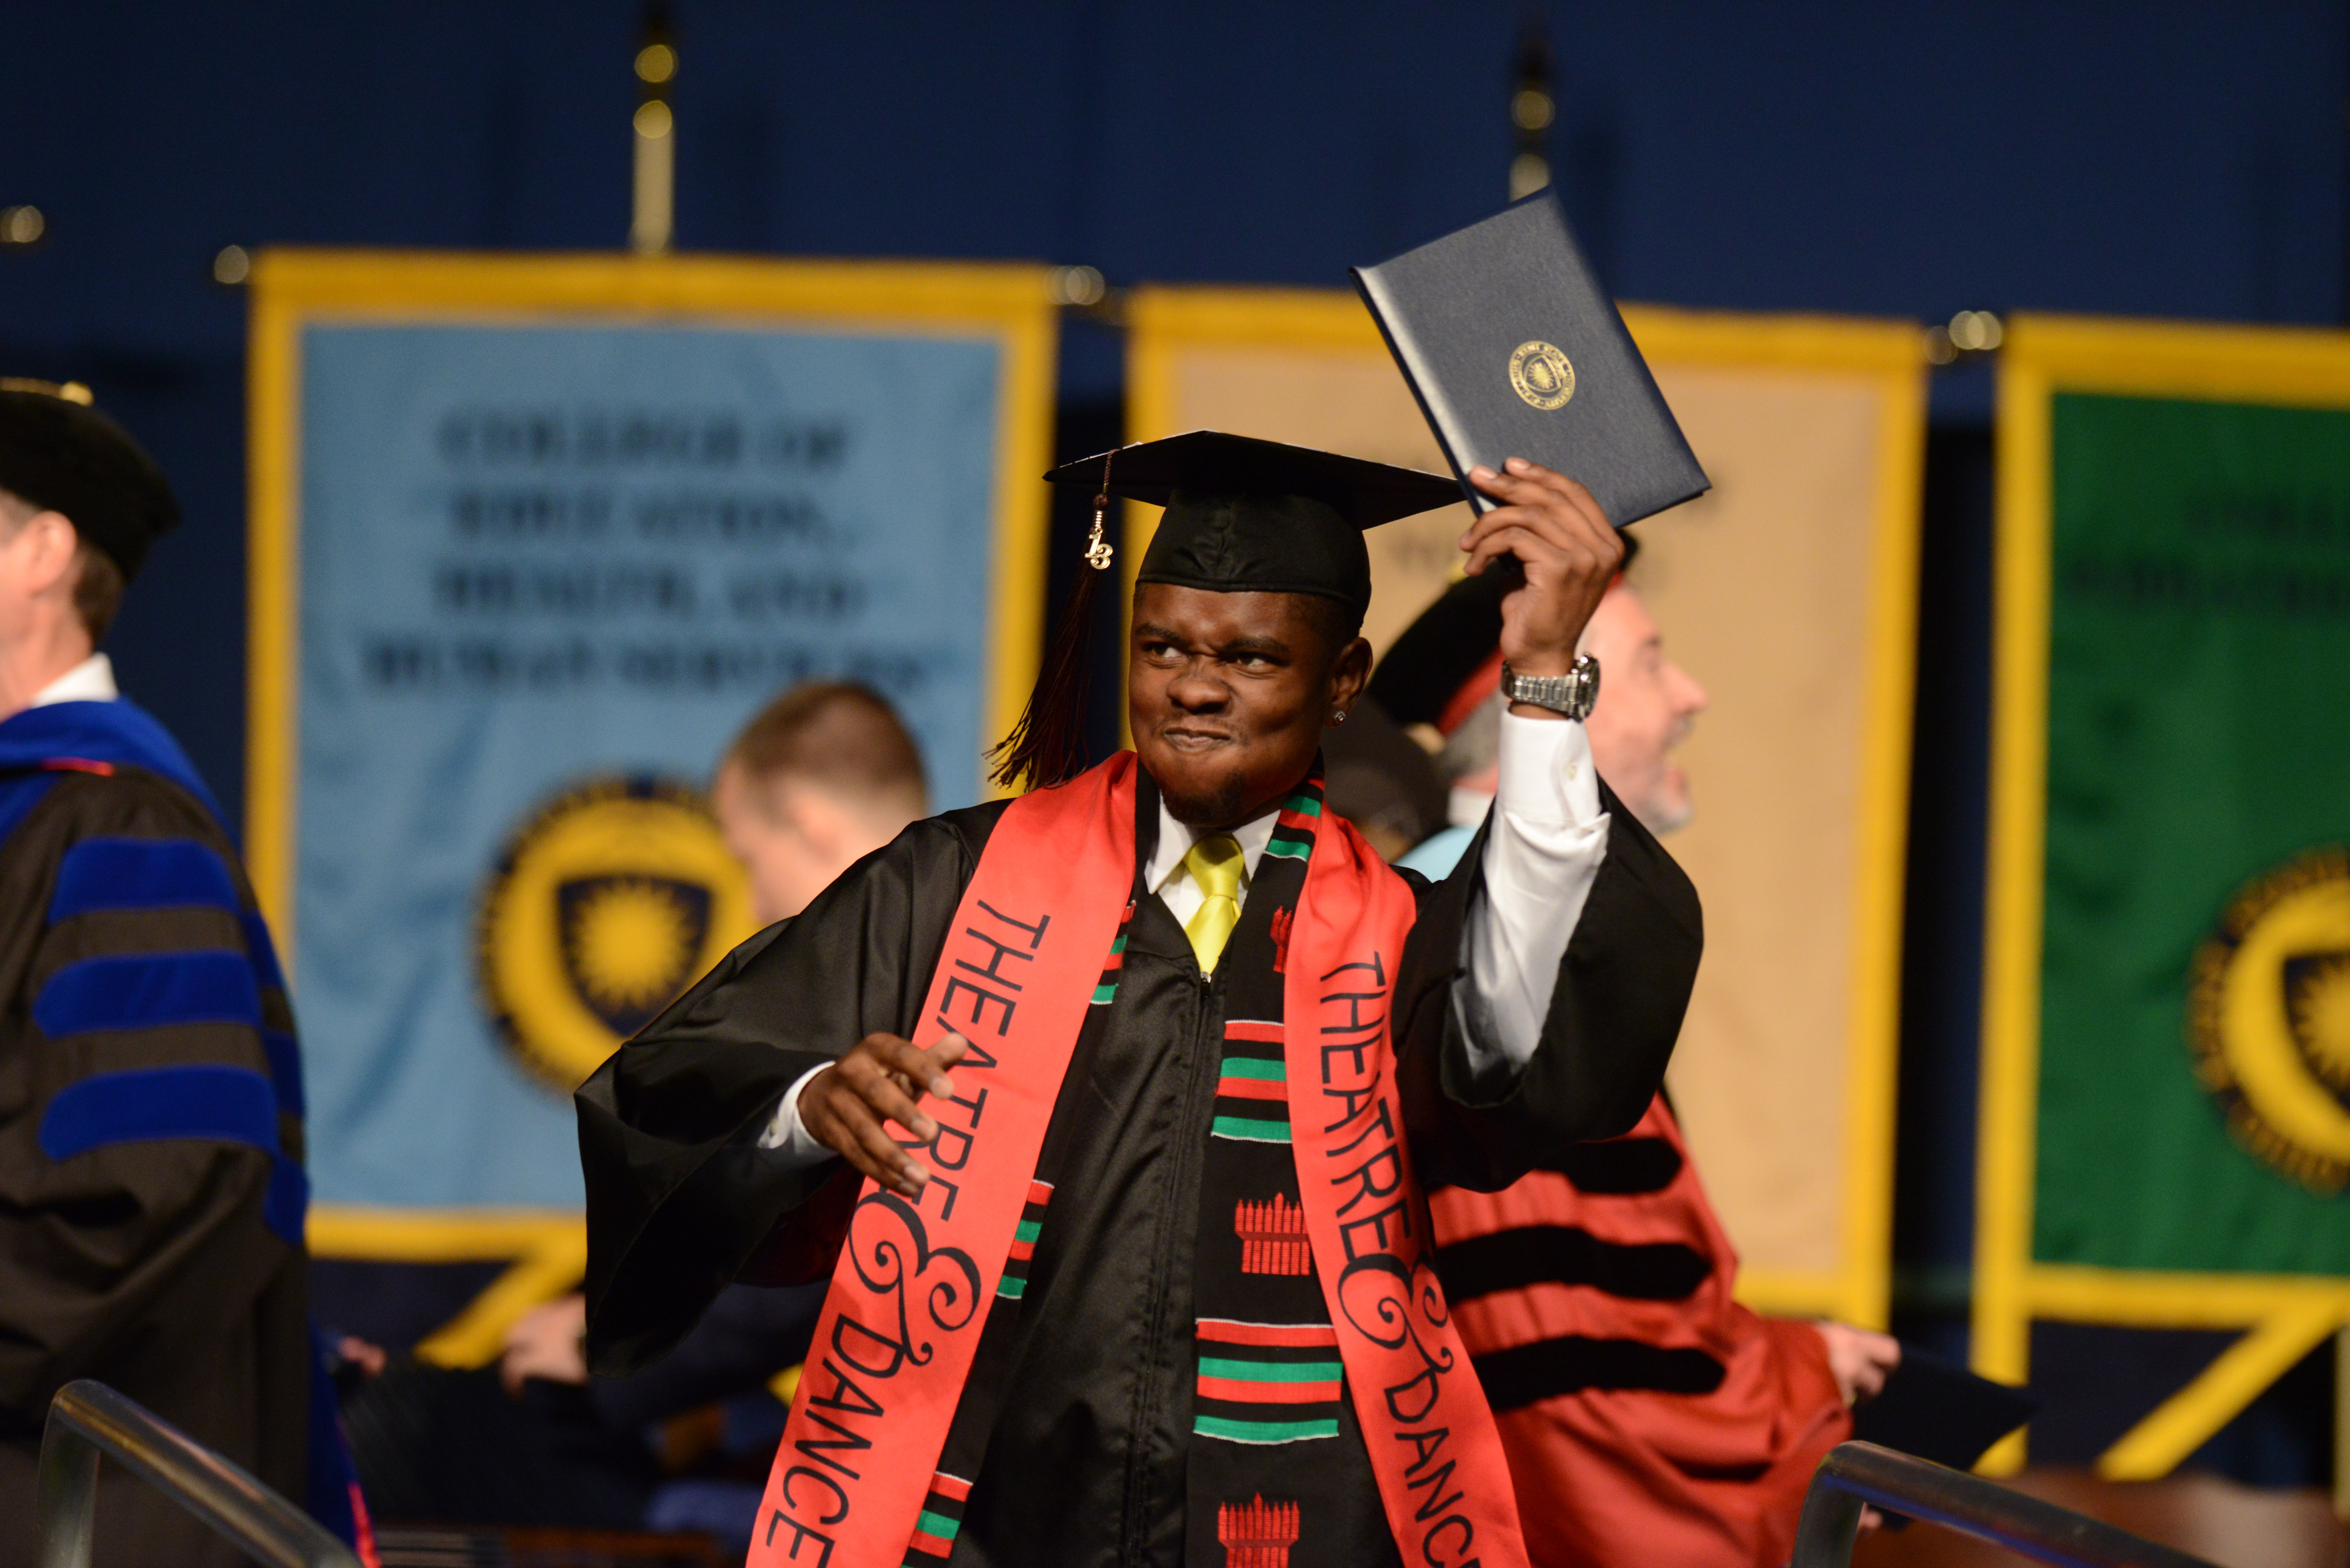 A Theatre student celebrates at Kent State commencement.